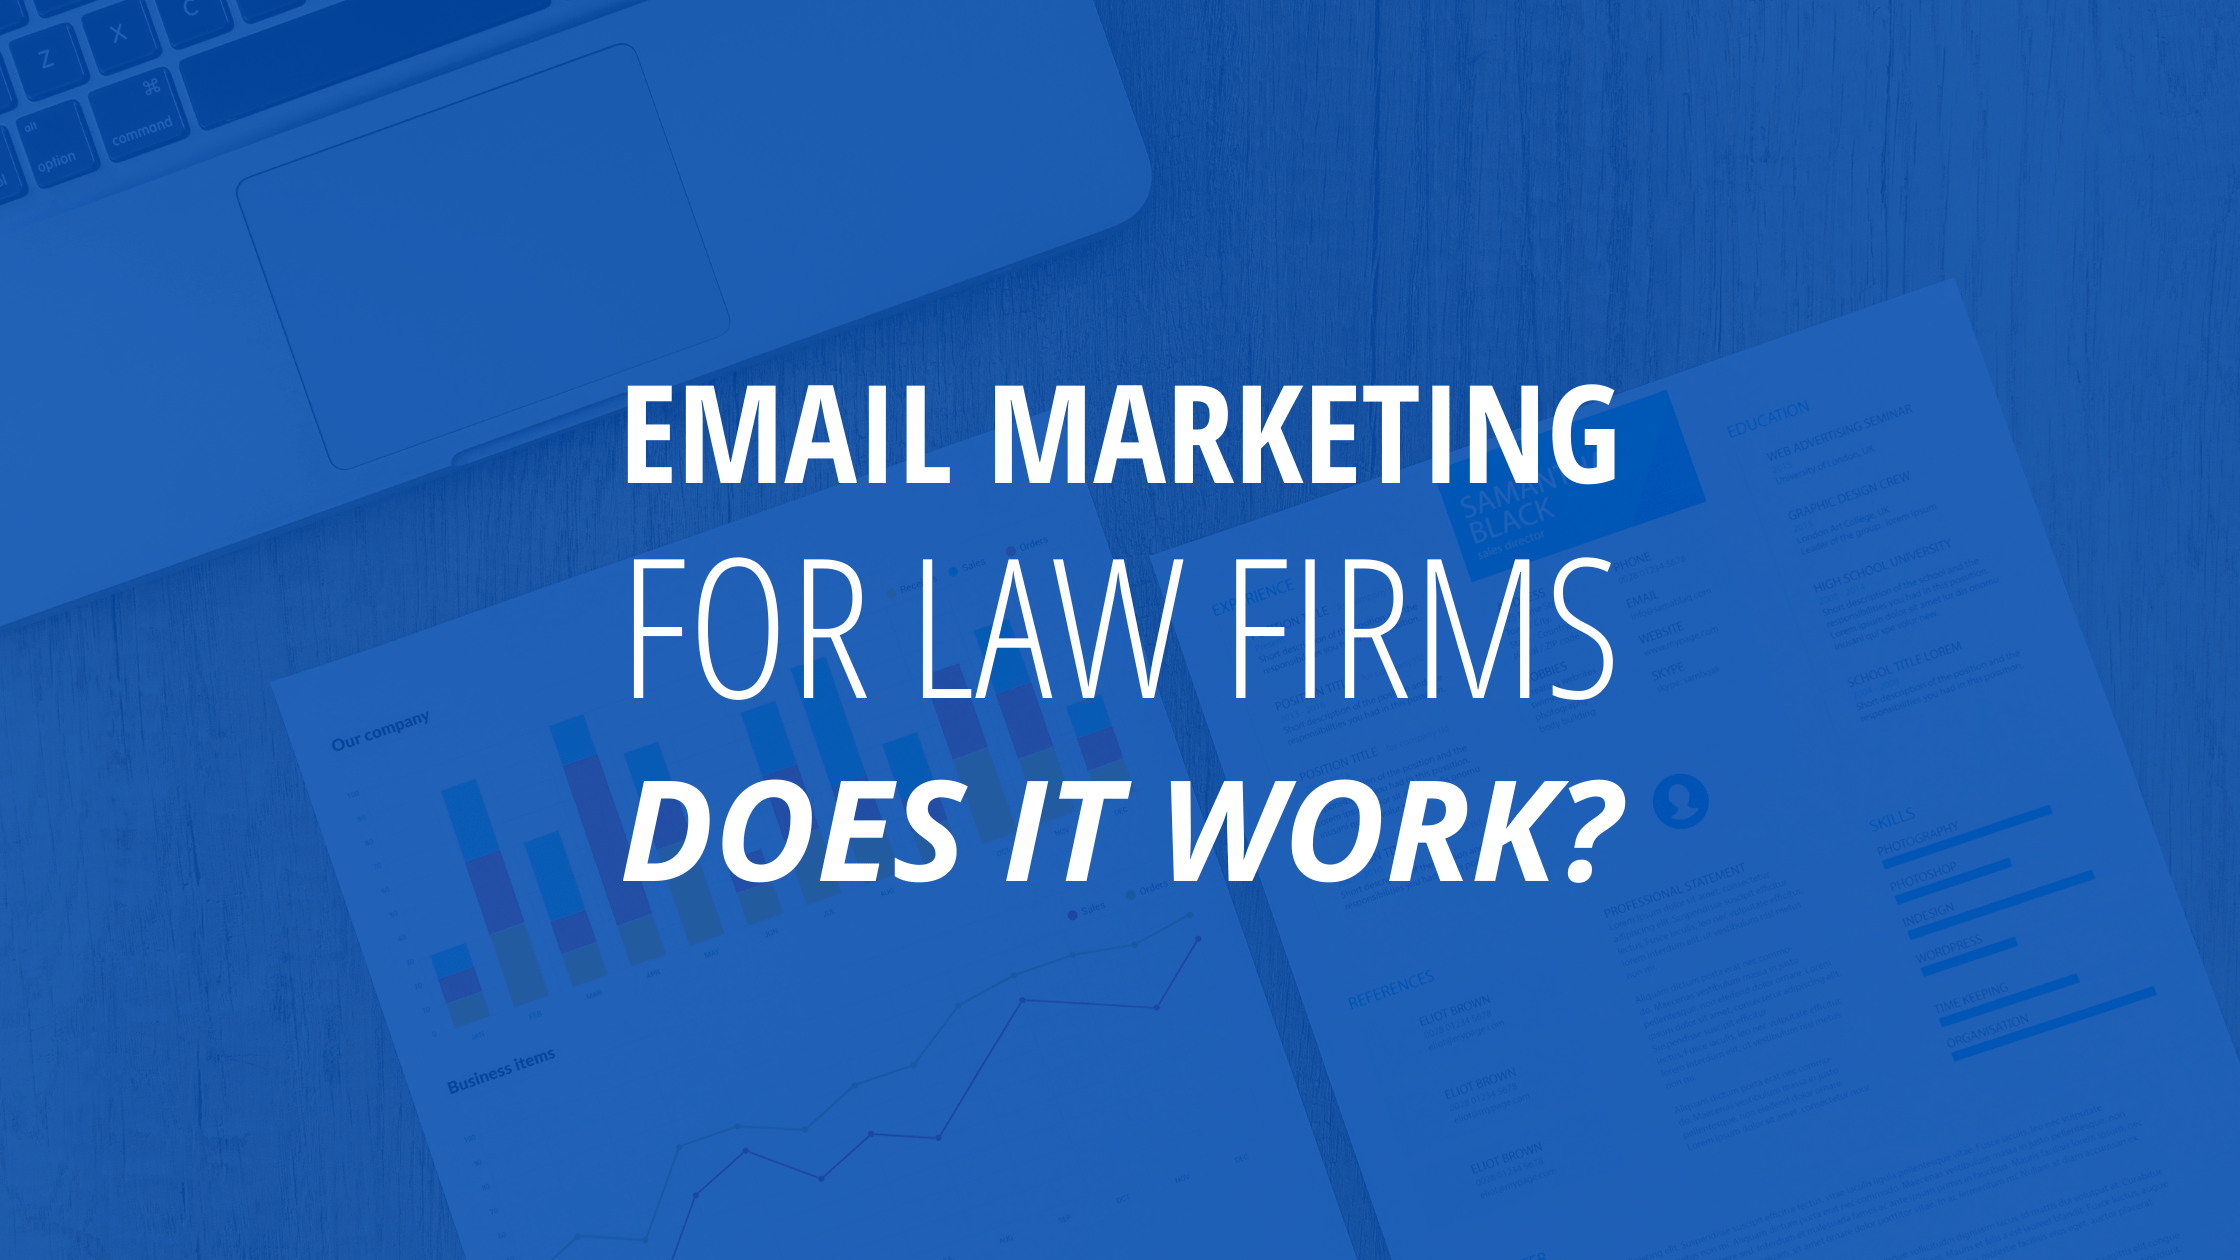 Does email marketing for law firms work